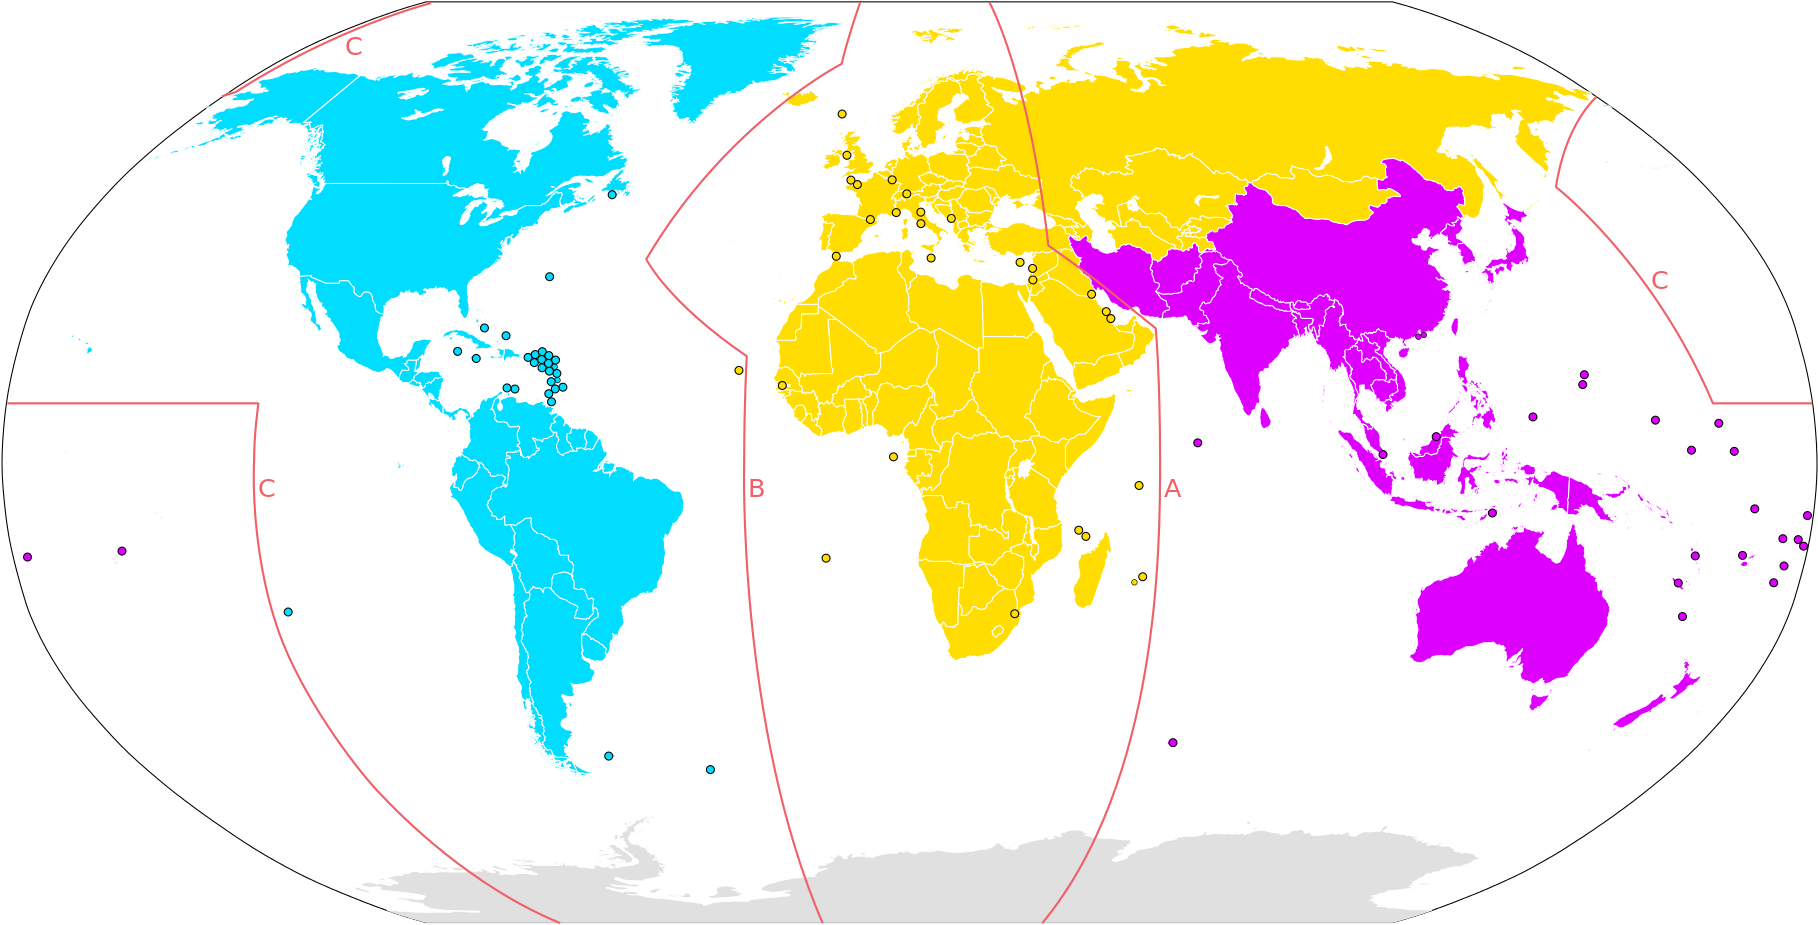 Download HD Open - Metric System Map Transparent PNG Image ... on metric units, metric adoption, metric tools, metric weight and measures, metric names, metric countries, sequence map, metric weight scale for, metric vs imperial measurements, metric conversion, metric calendar,